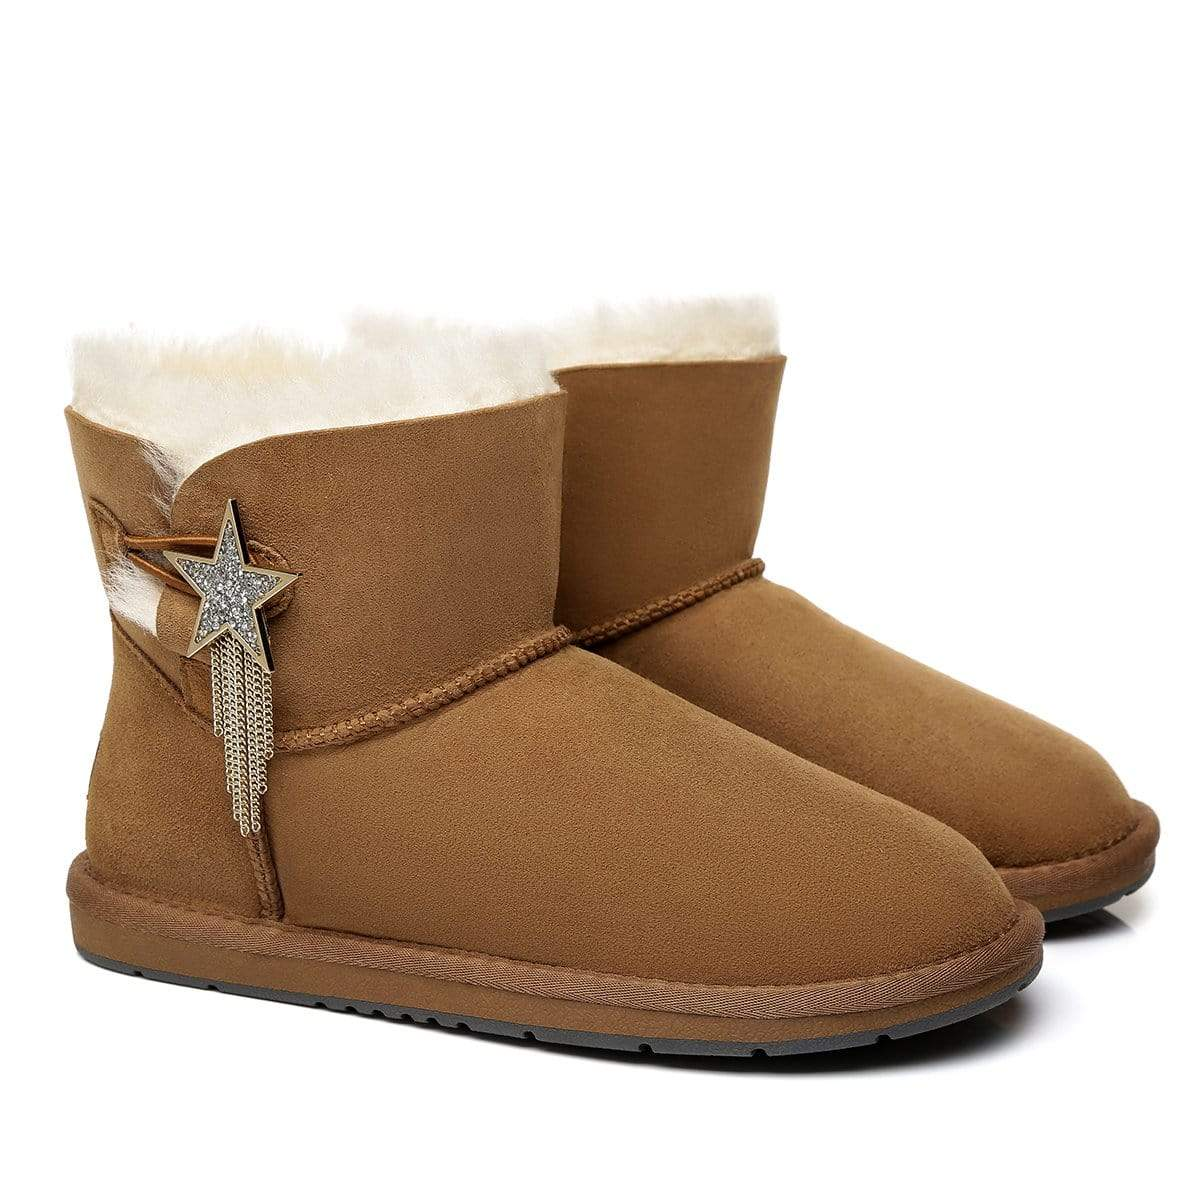 UGG Direct - Mia Star Boots - UGG Direct - Australia